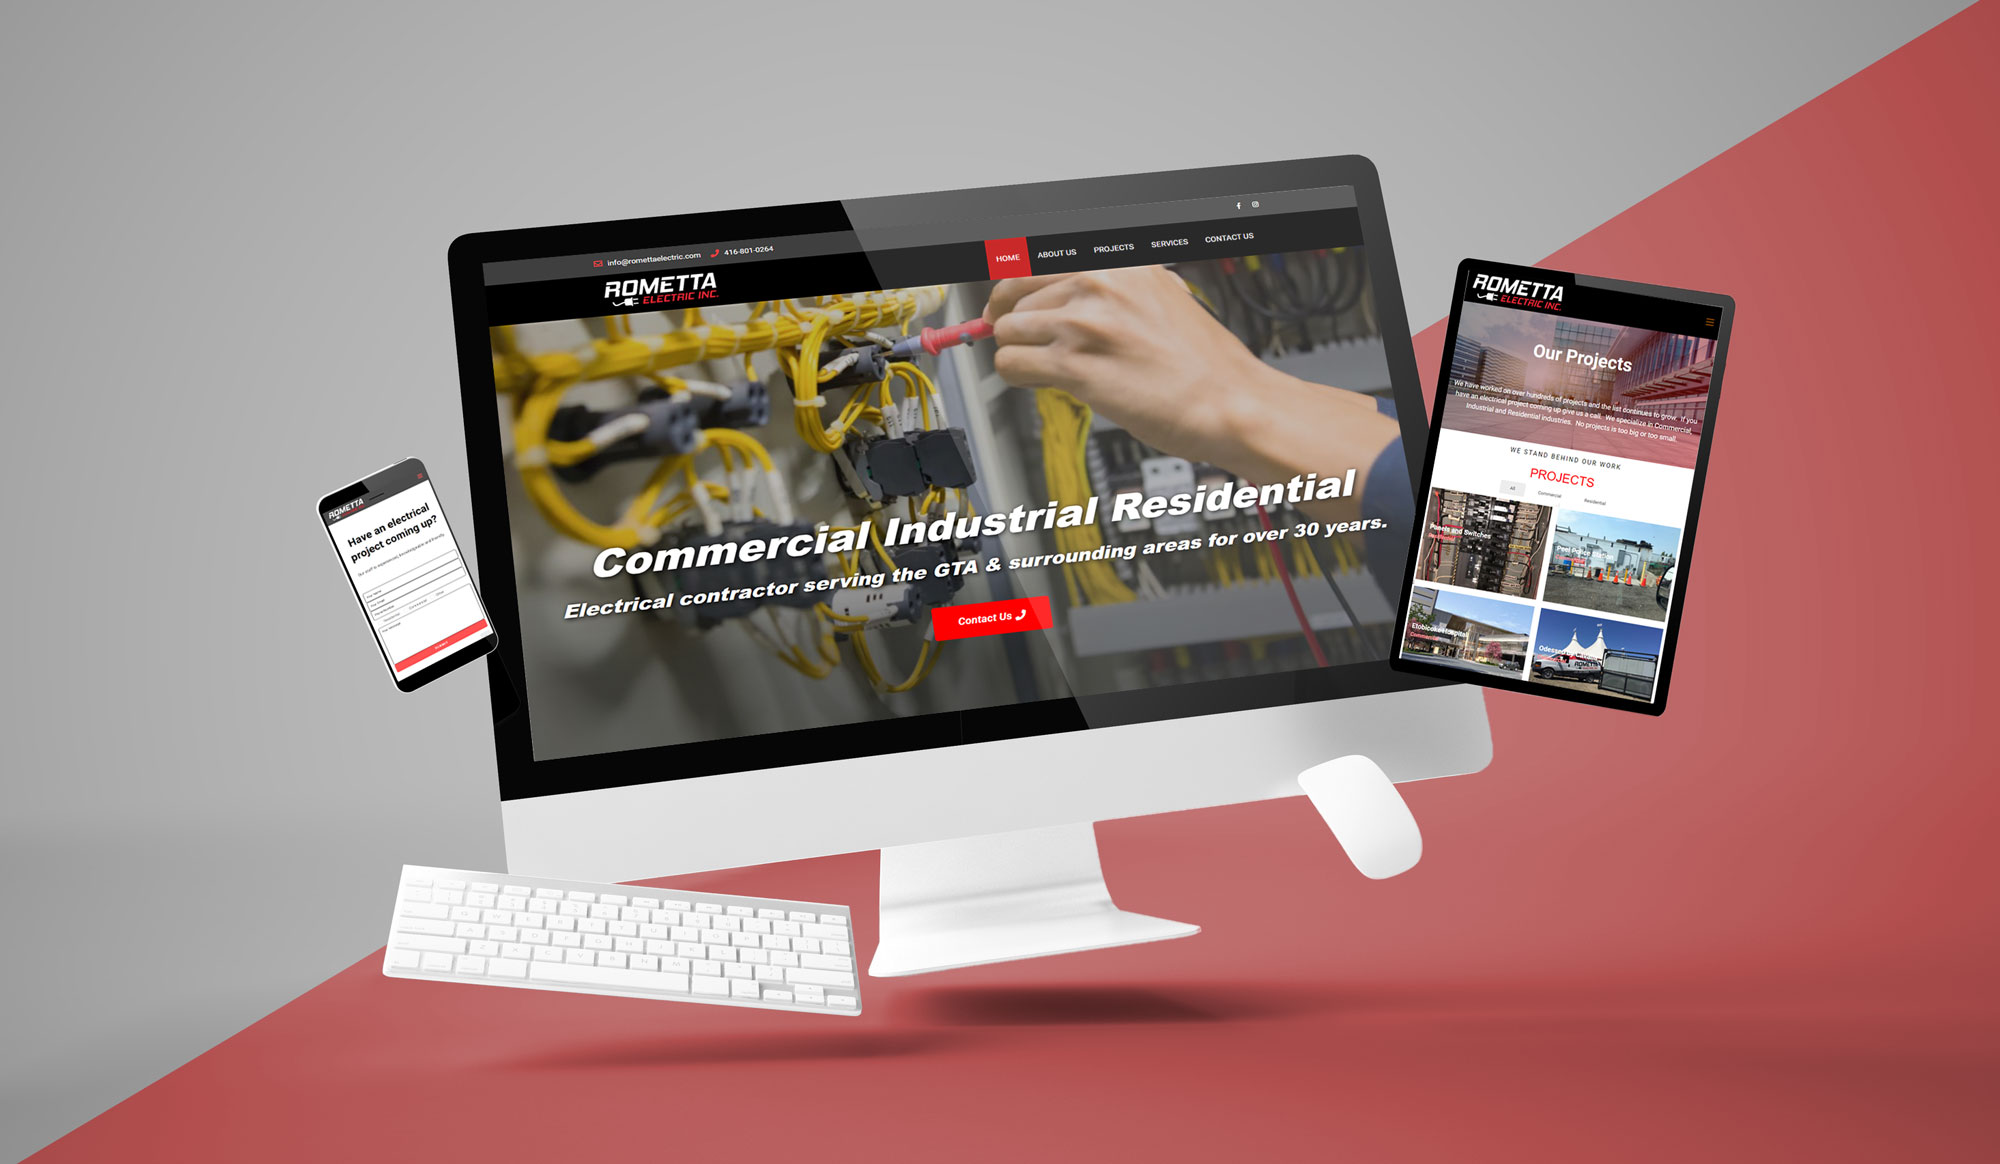 Commercial Industrial Website Design and Development Rometta Electric